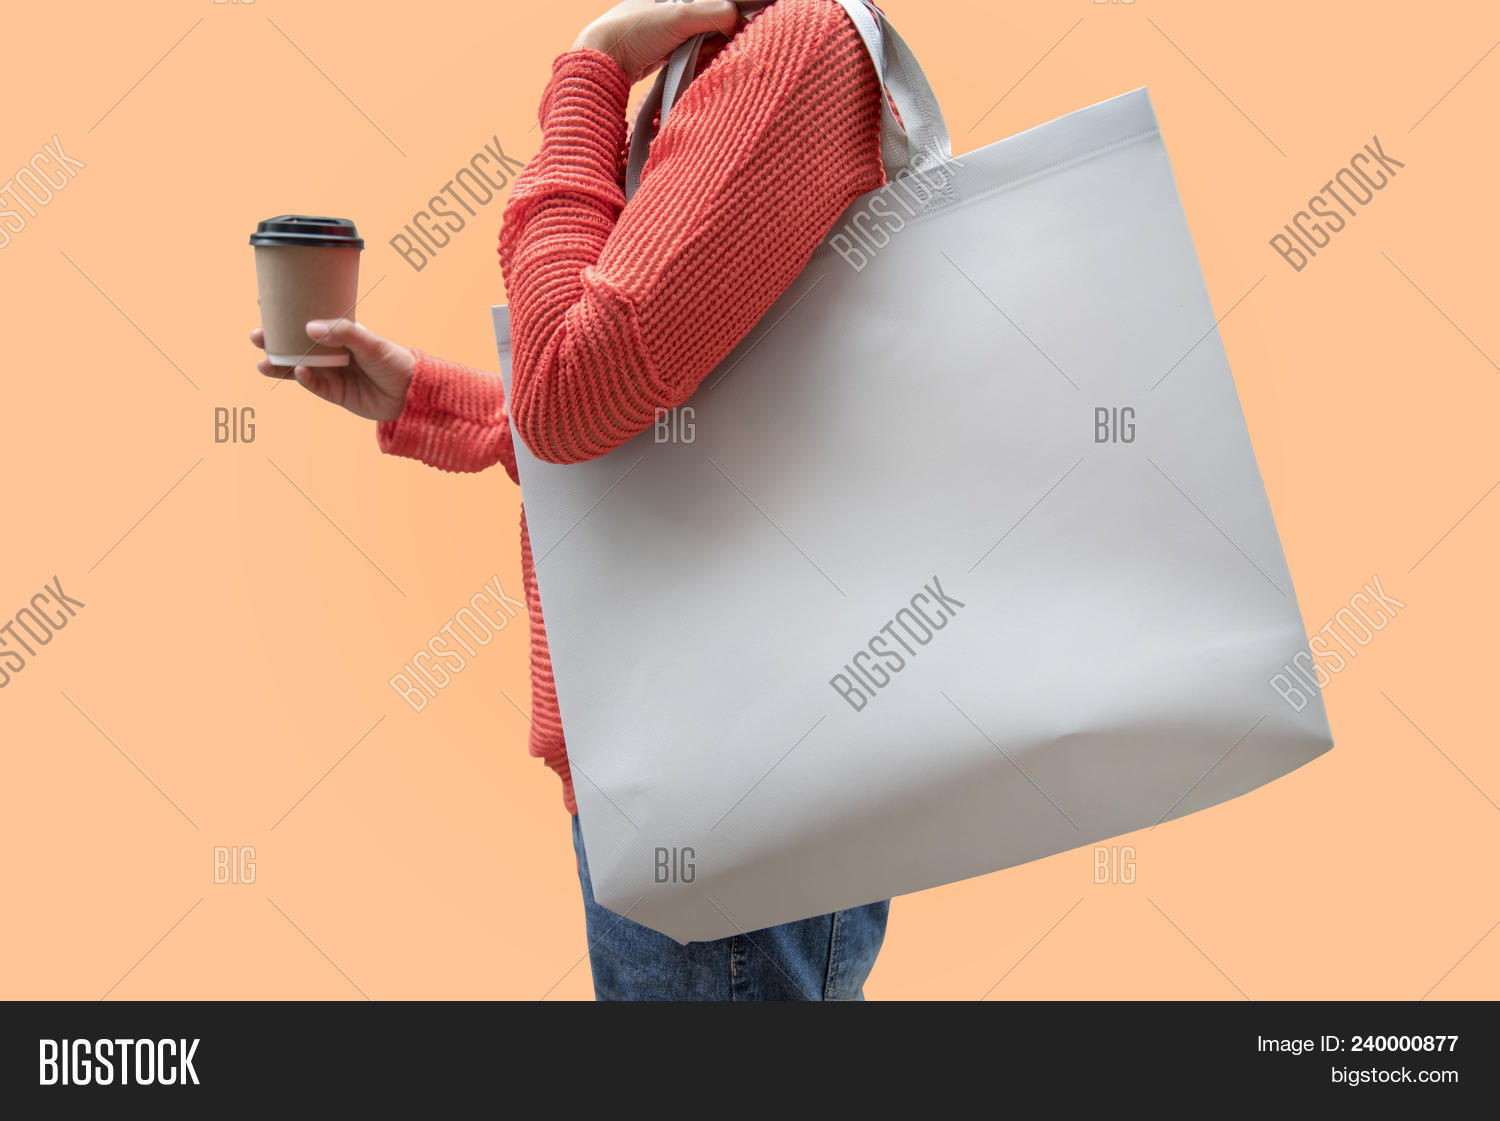 Girl Holding Bag Image & Photo (Free Trial) | Bigstock